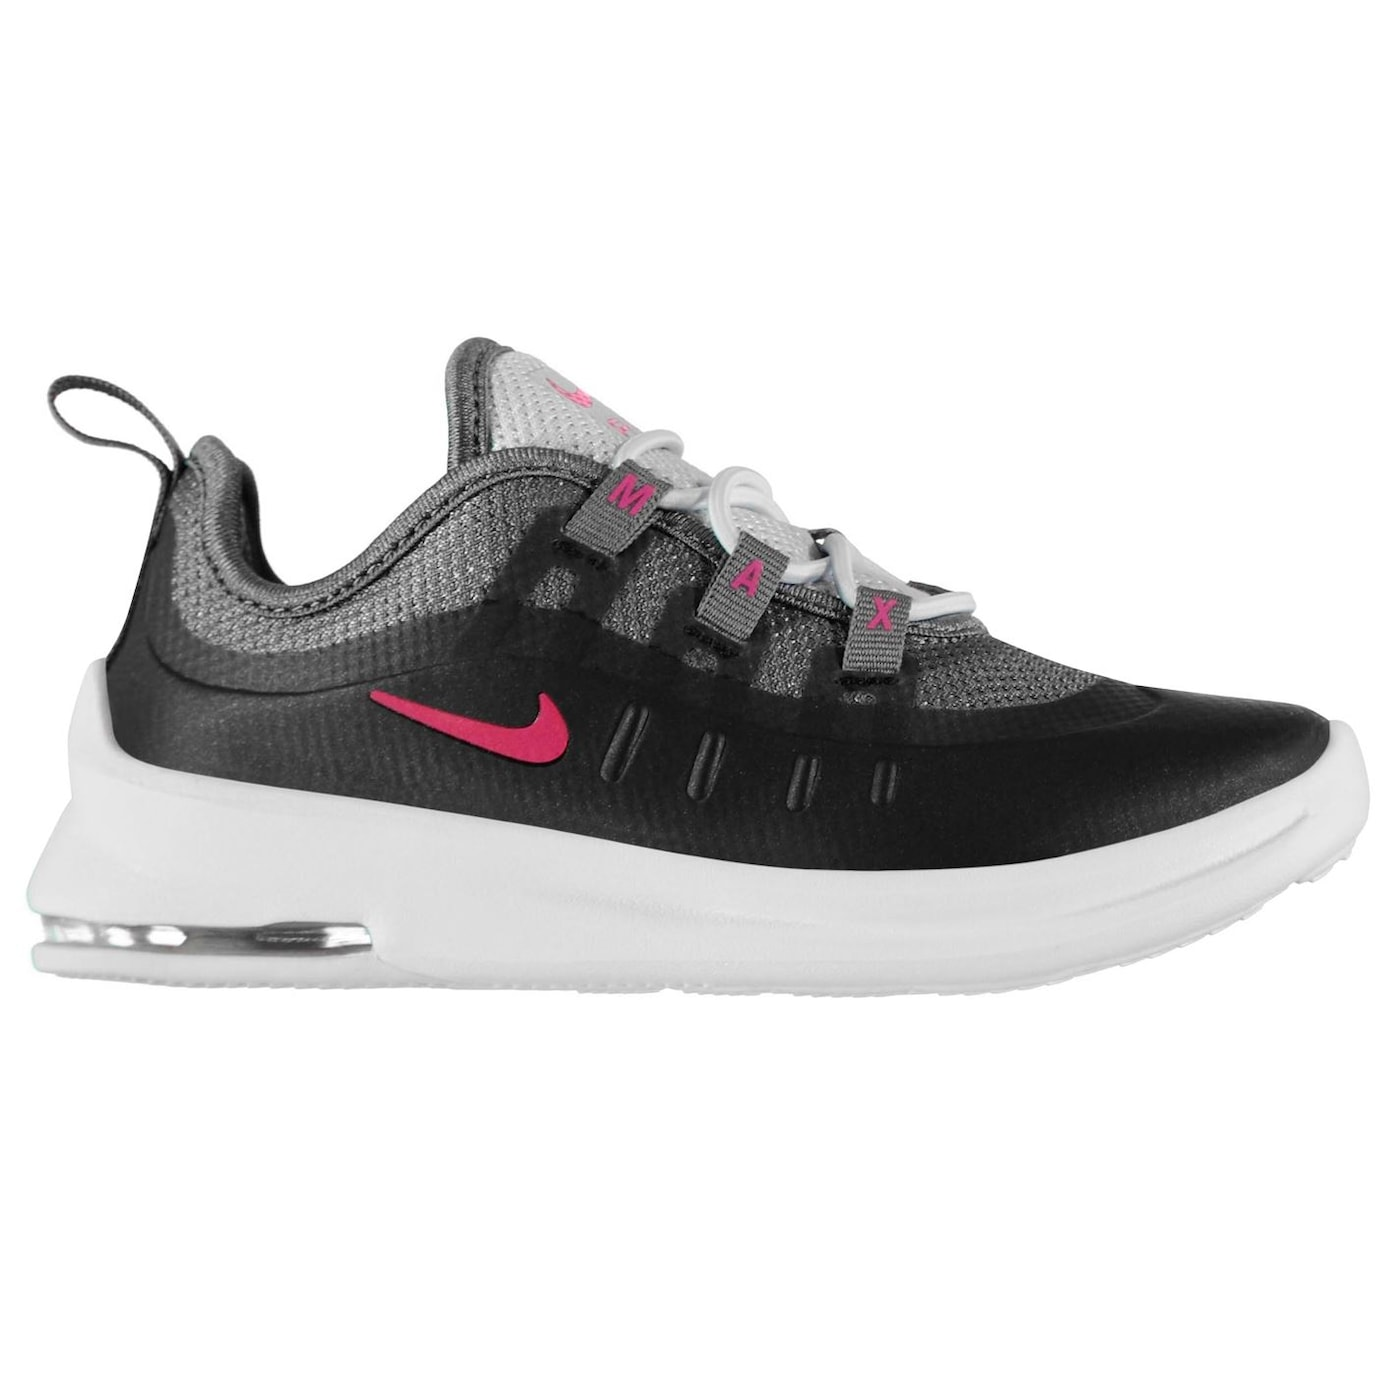 Nike Air Max Axis Infant Girls